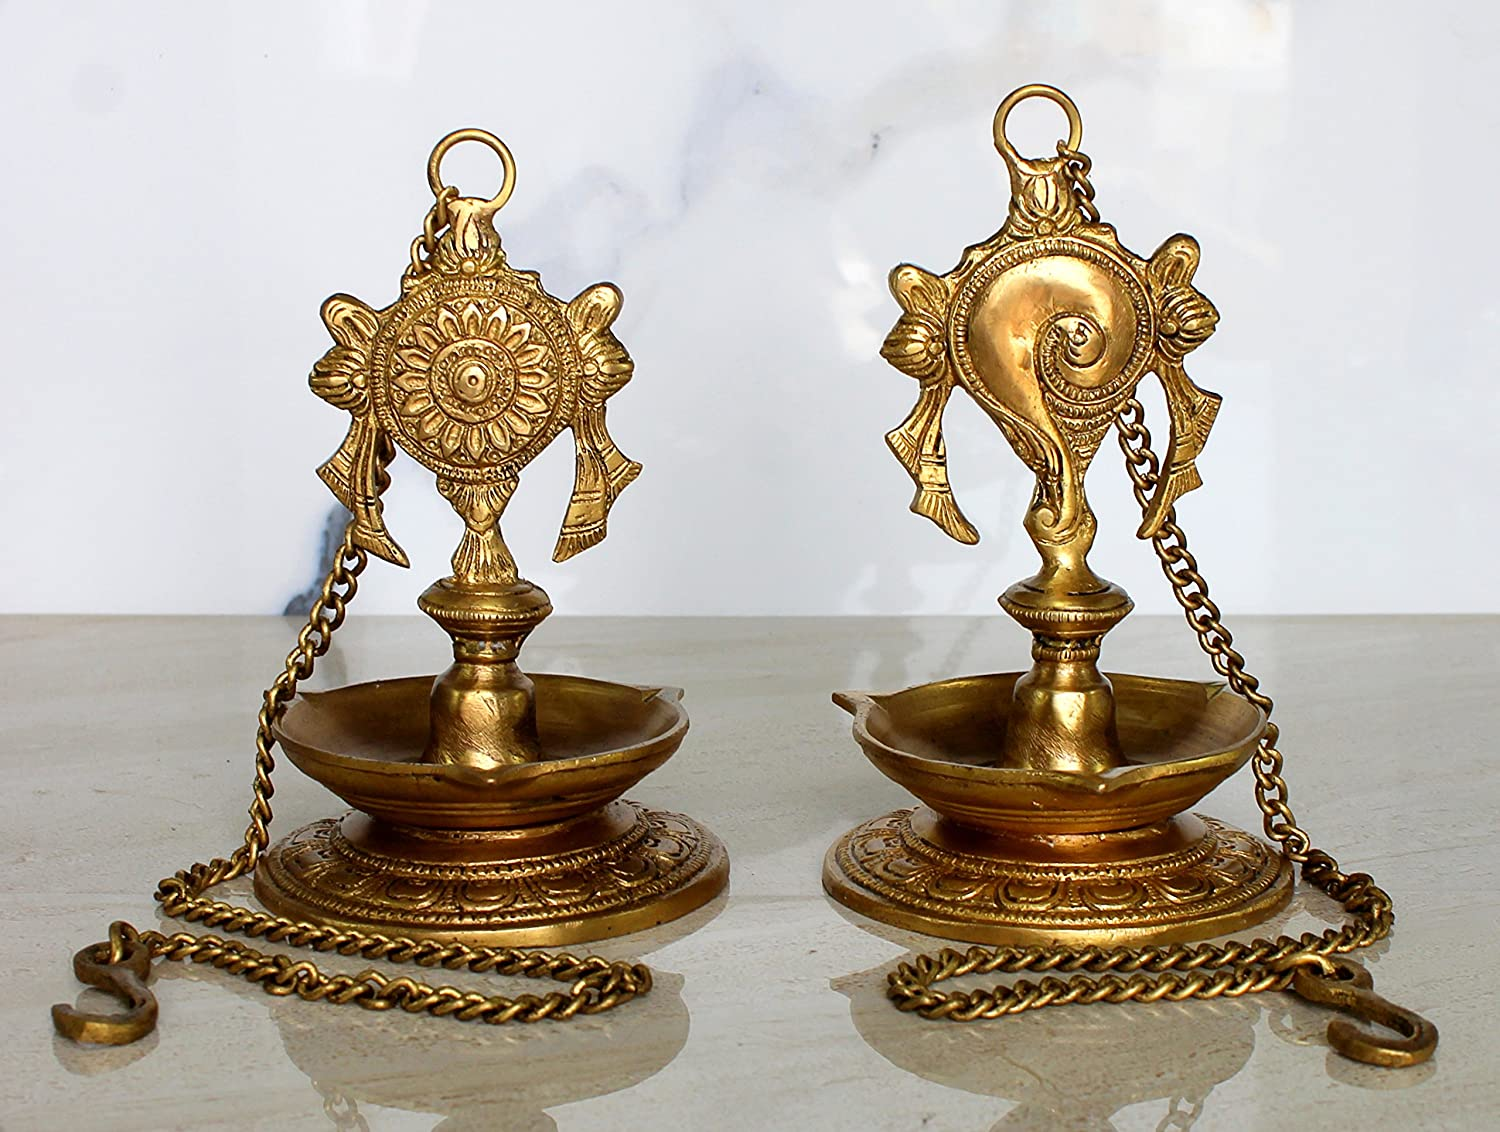 Brass-hanging-diya Lamp For Home and Office Pair Of Brass Hanging Diya Lamp For Home and Office Hanging Length 25.75 Hanging Length 25.75 Oil Lamp StonKraft Ideal Gift